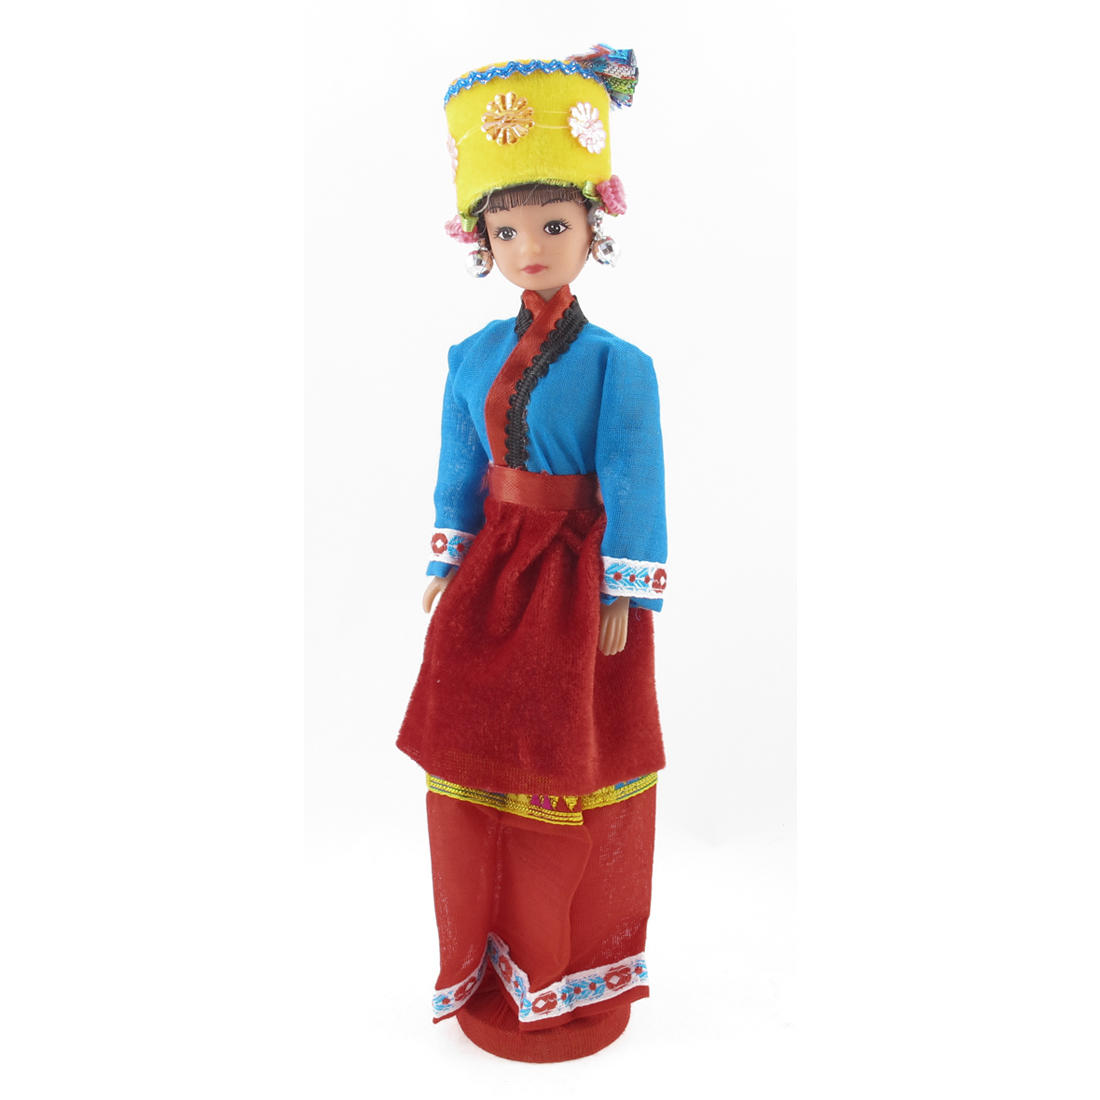 Chinese Characteristic Tu Nationality Ethnic Minority Girl Doll Souvenir Gift